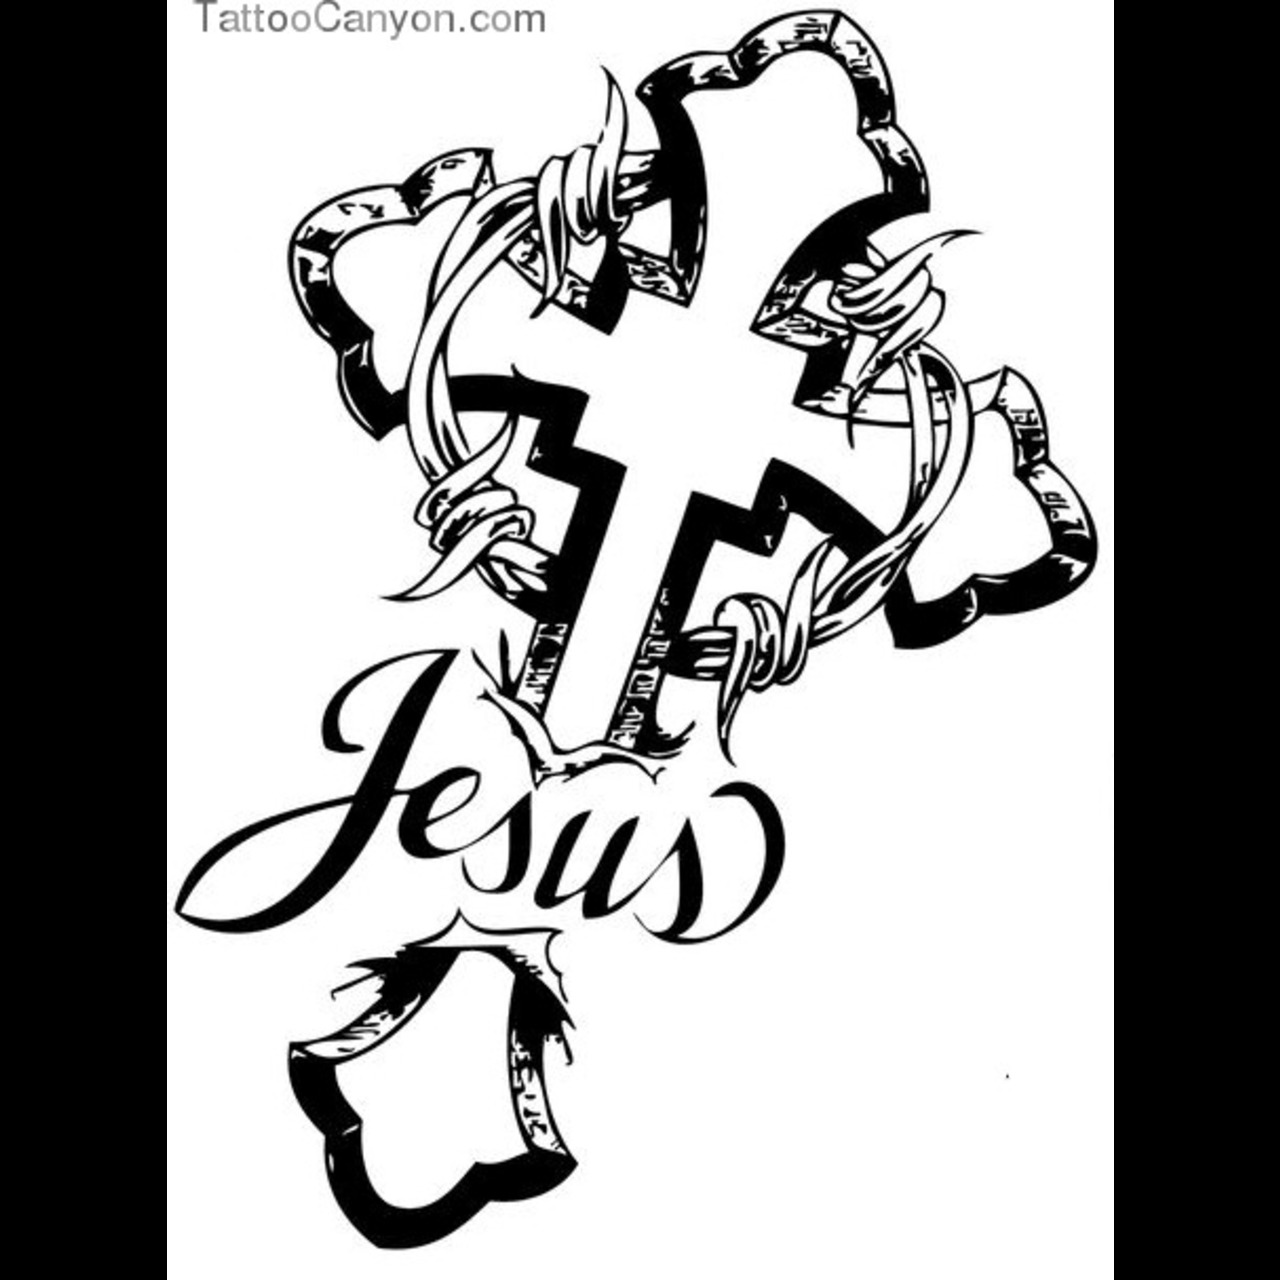 Jesus Tattoo Drawing At Getdrawings Com Free For Personal Use